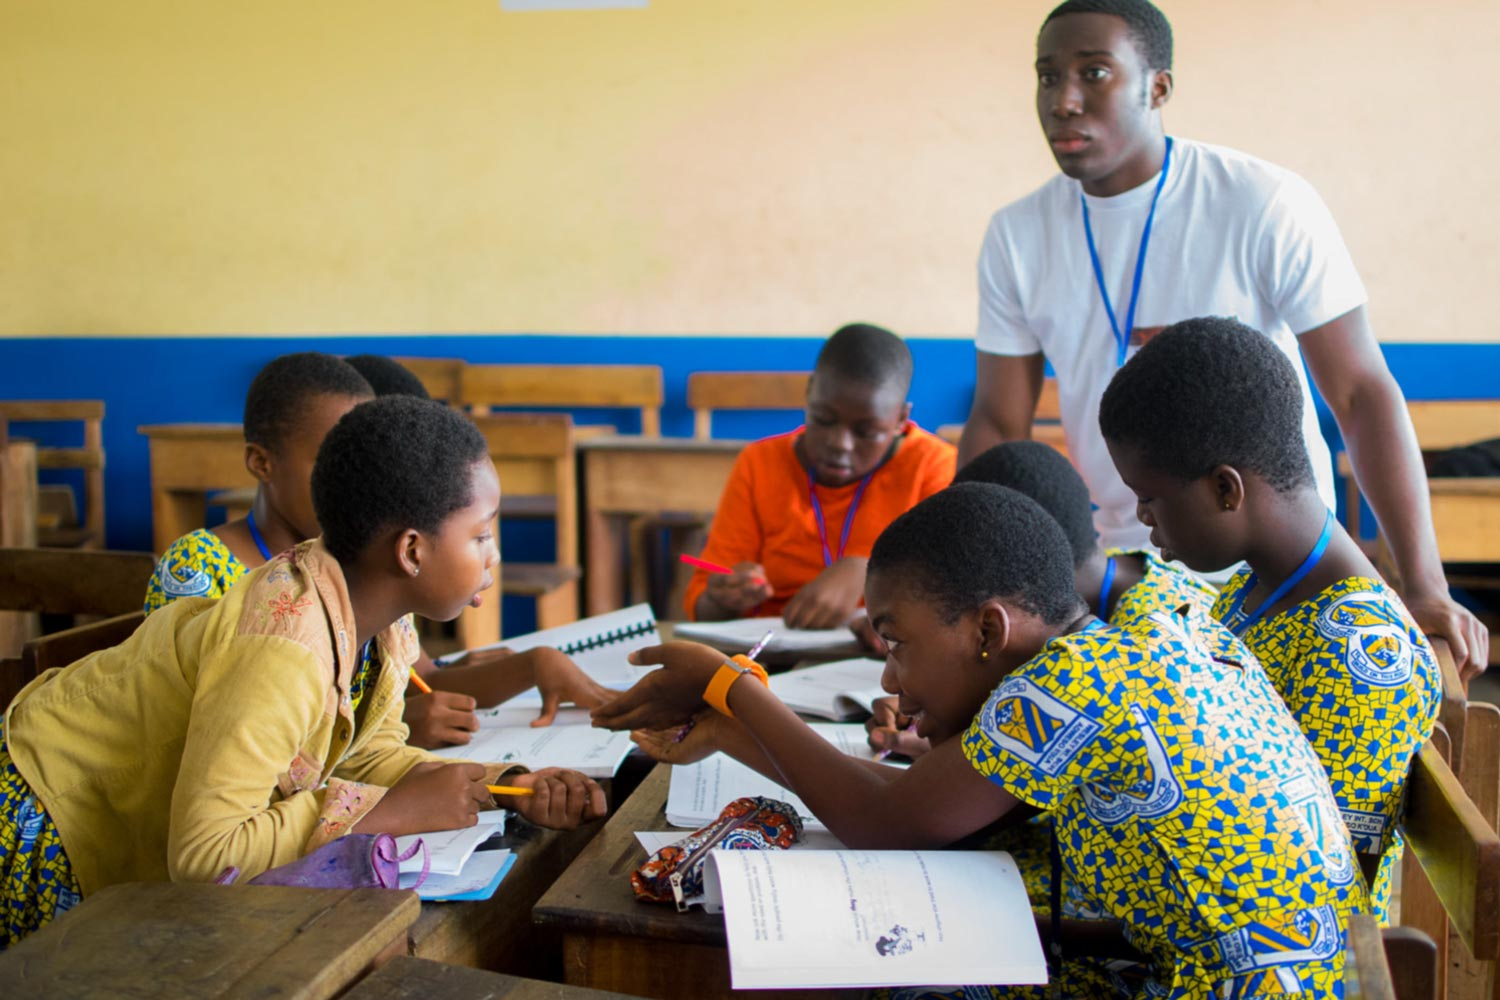 When not working on the telemedicine project, Ted Obi, the son of parents who emigrated from Nigeria, taught entrepreneurship skills to students at Wesley International School in Ghana.